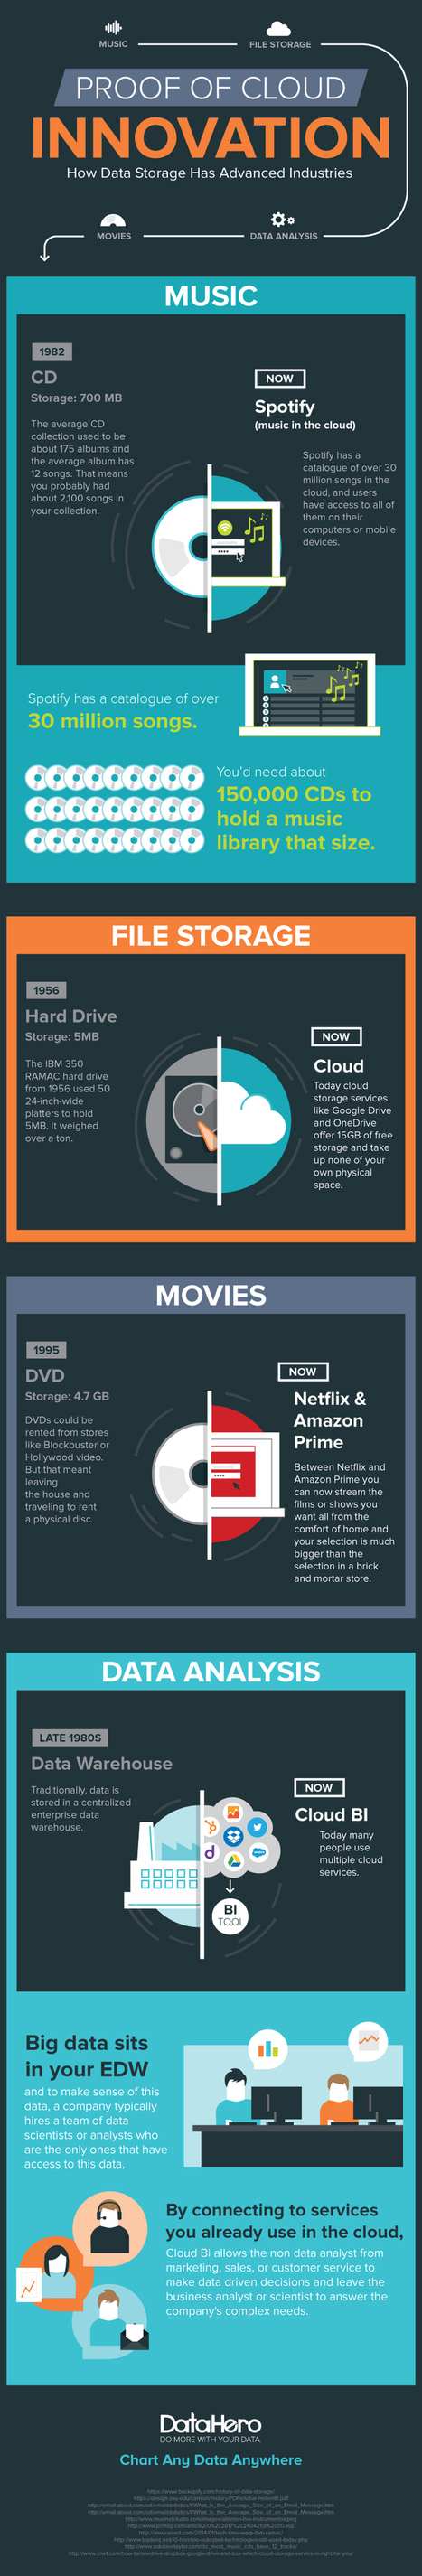 How Data in the Cloud Has Changed Everything (Infographic) | Big Data & the Internet Of Things | Scoop.it